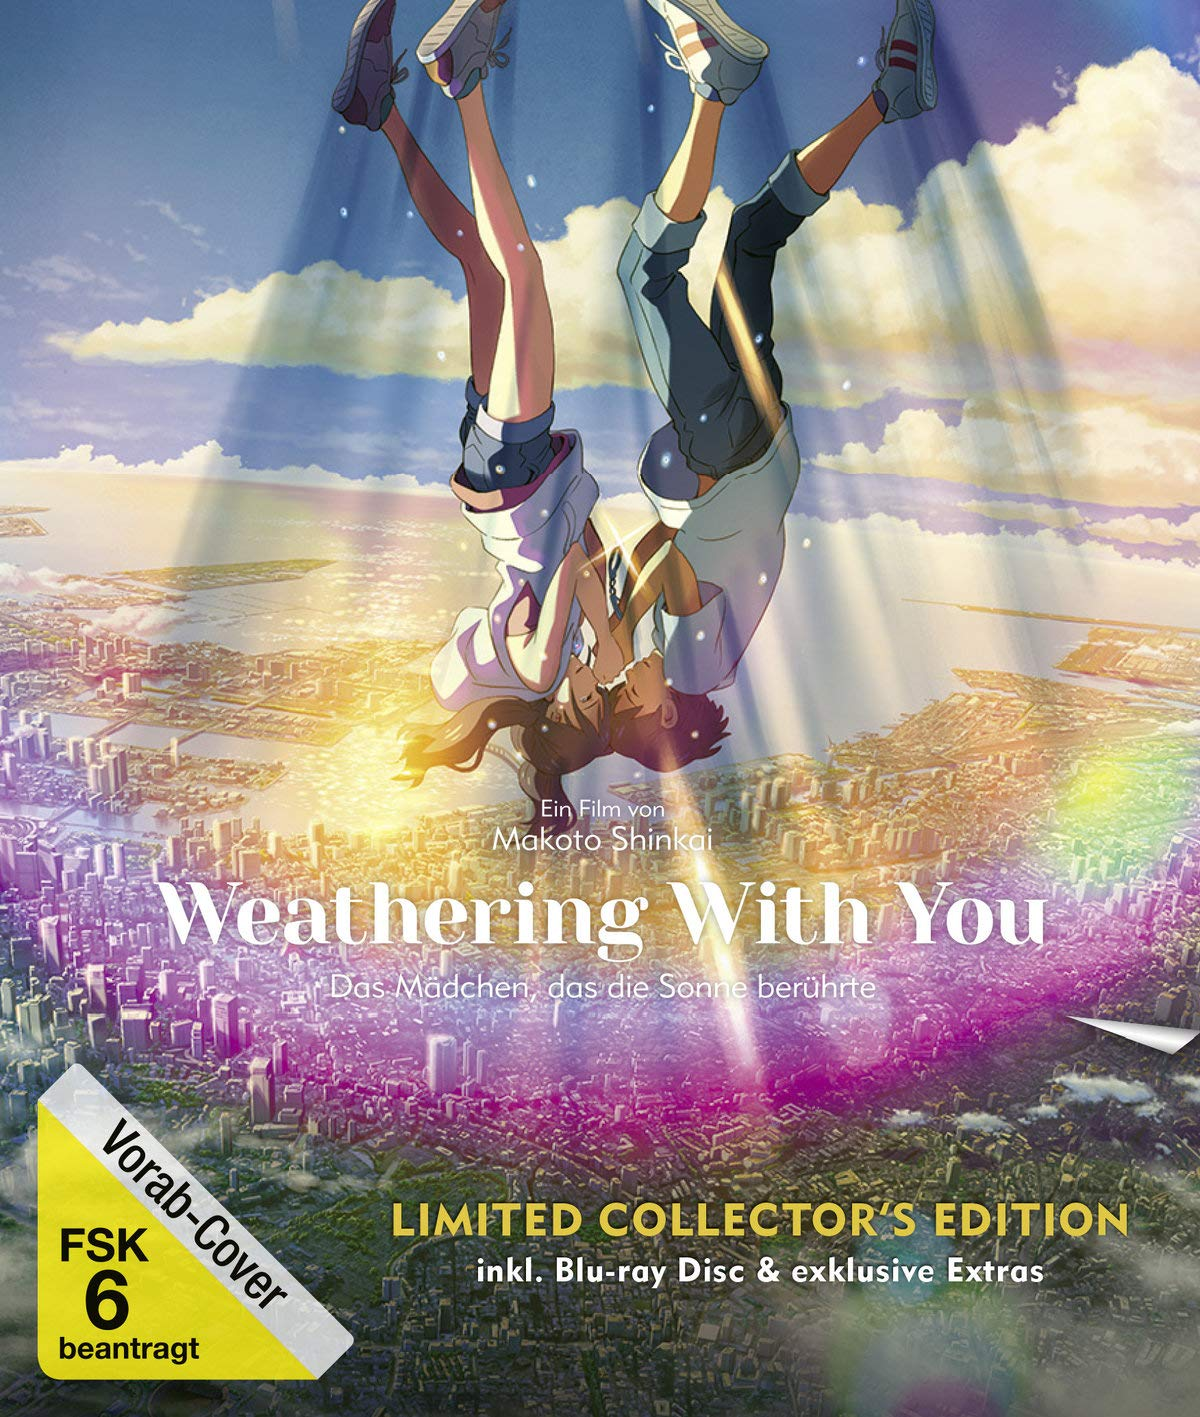 Weathering With You.jpg